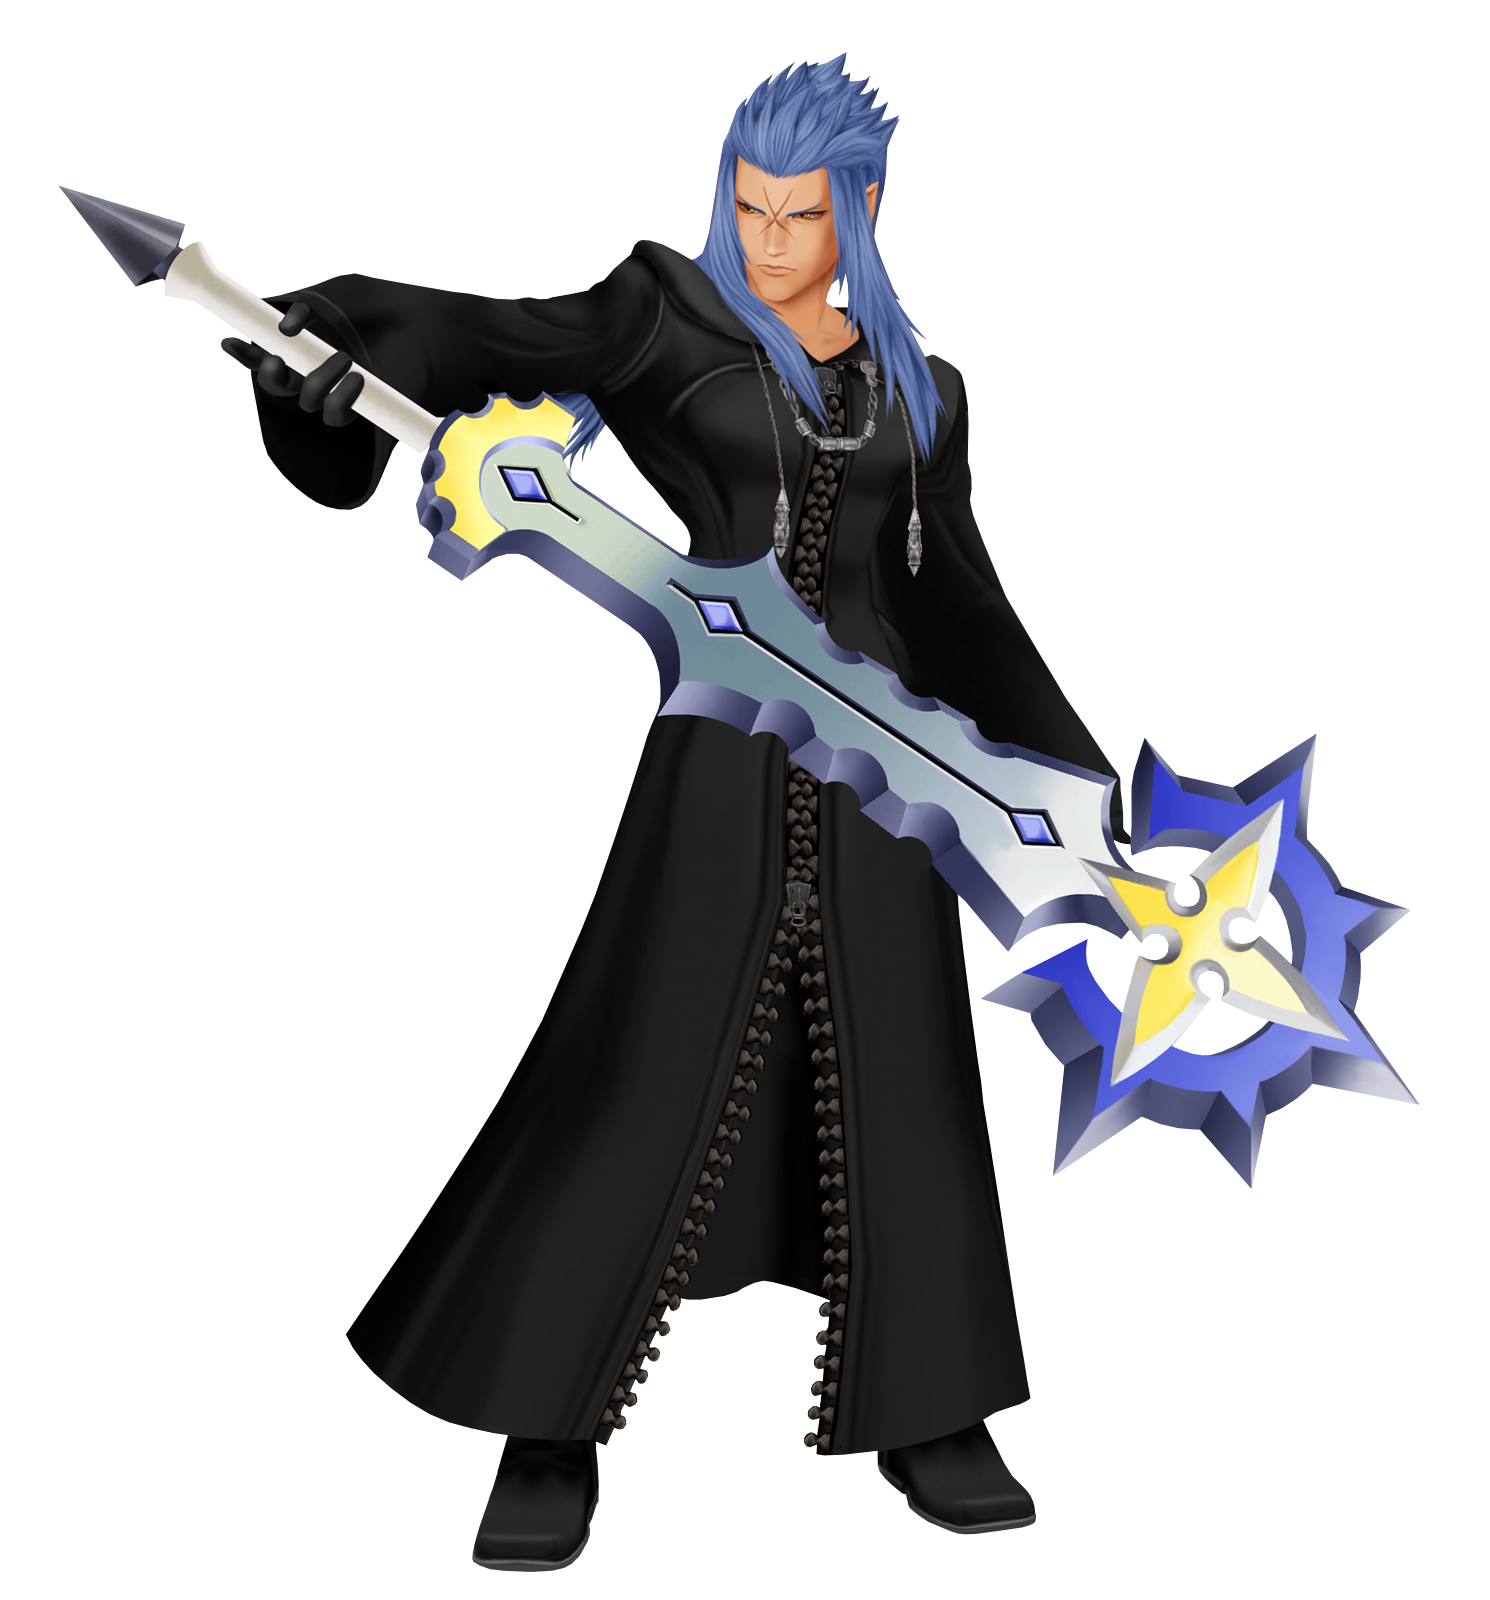 Saix Wallpaper   63 Group Wallpapers 1490x1600